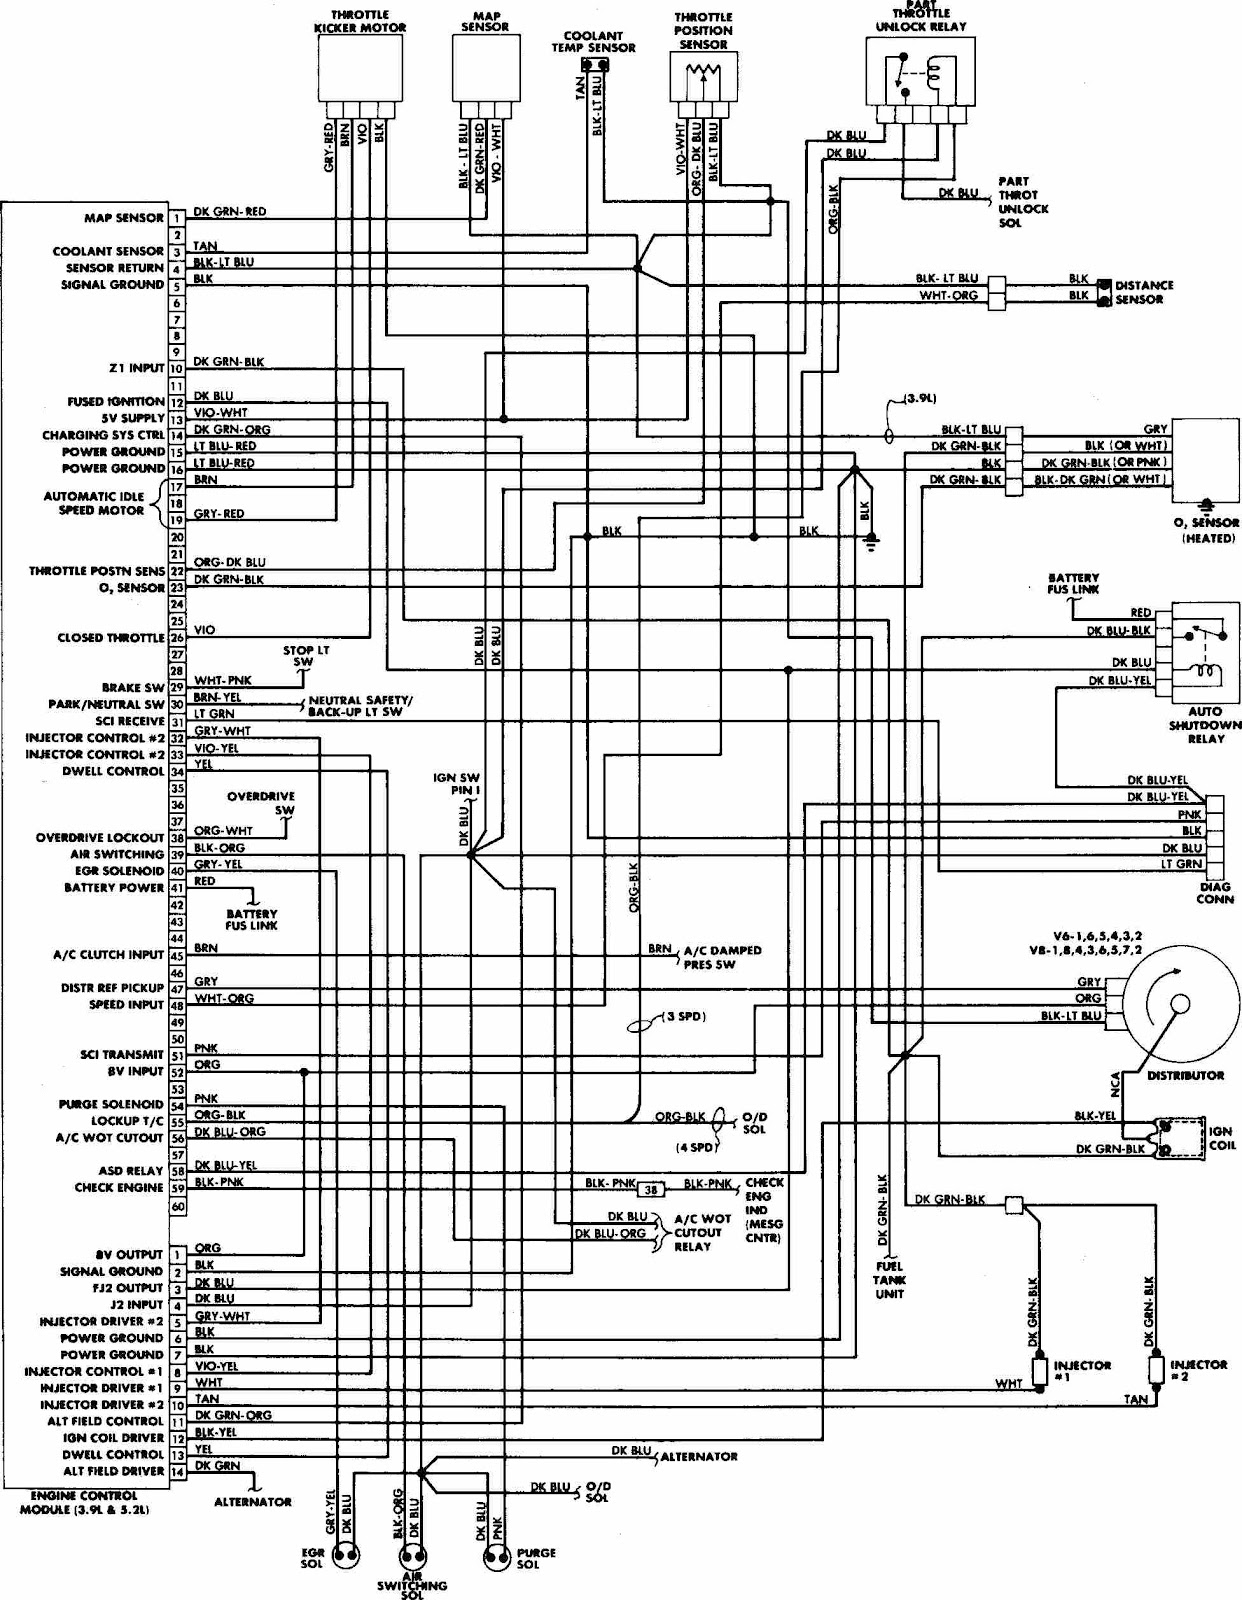 hight resolution of dodge w100 1988 engine control wiring diagram dodge